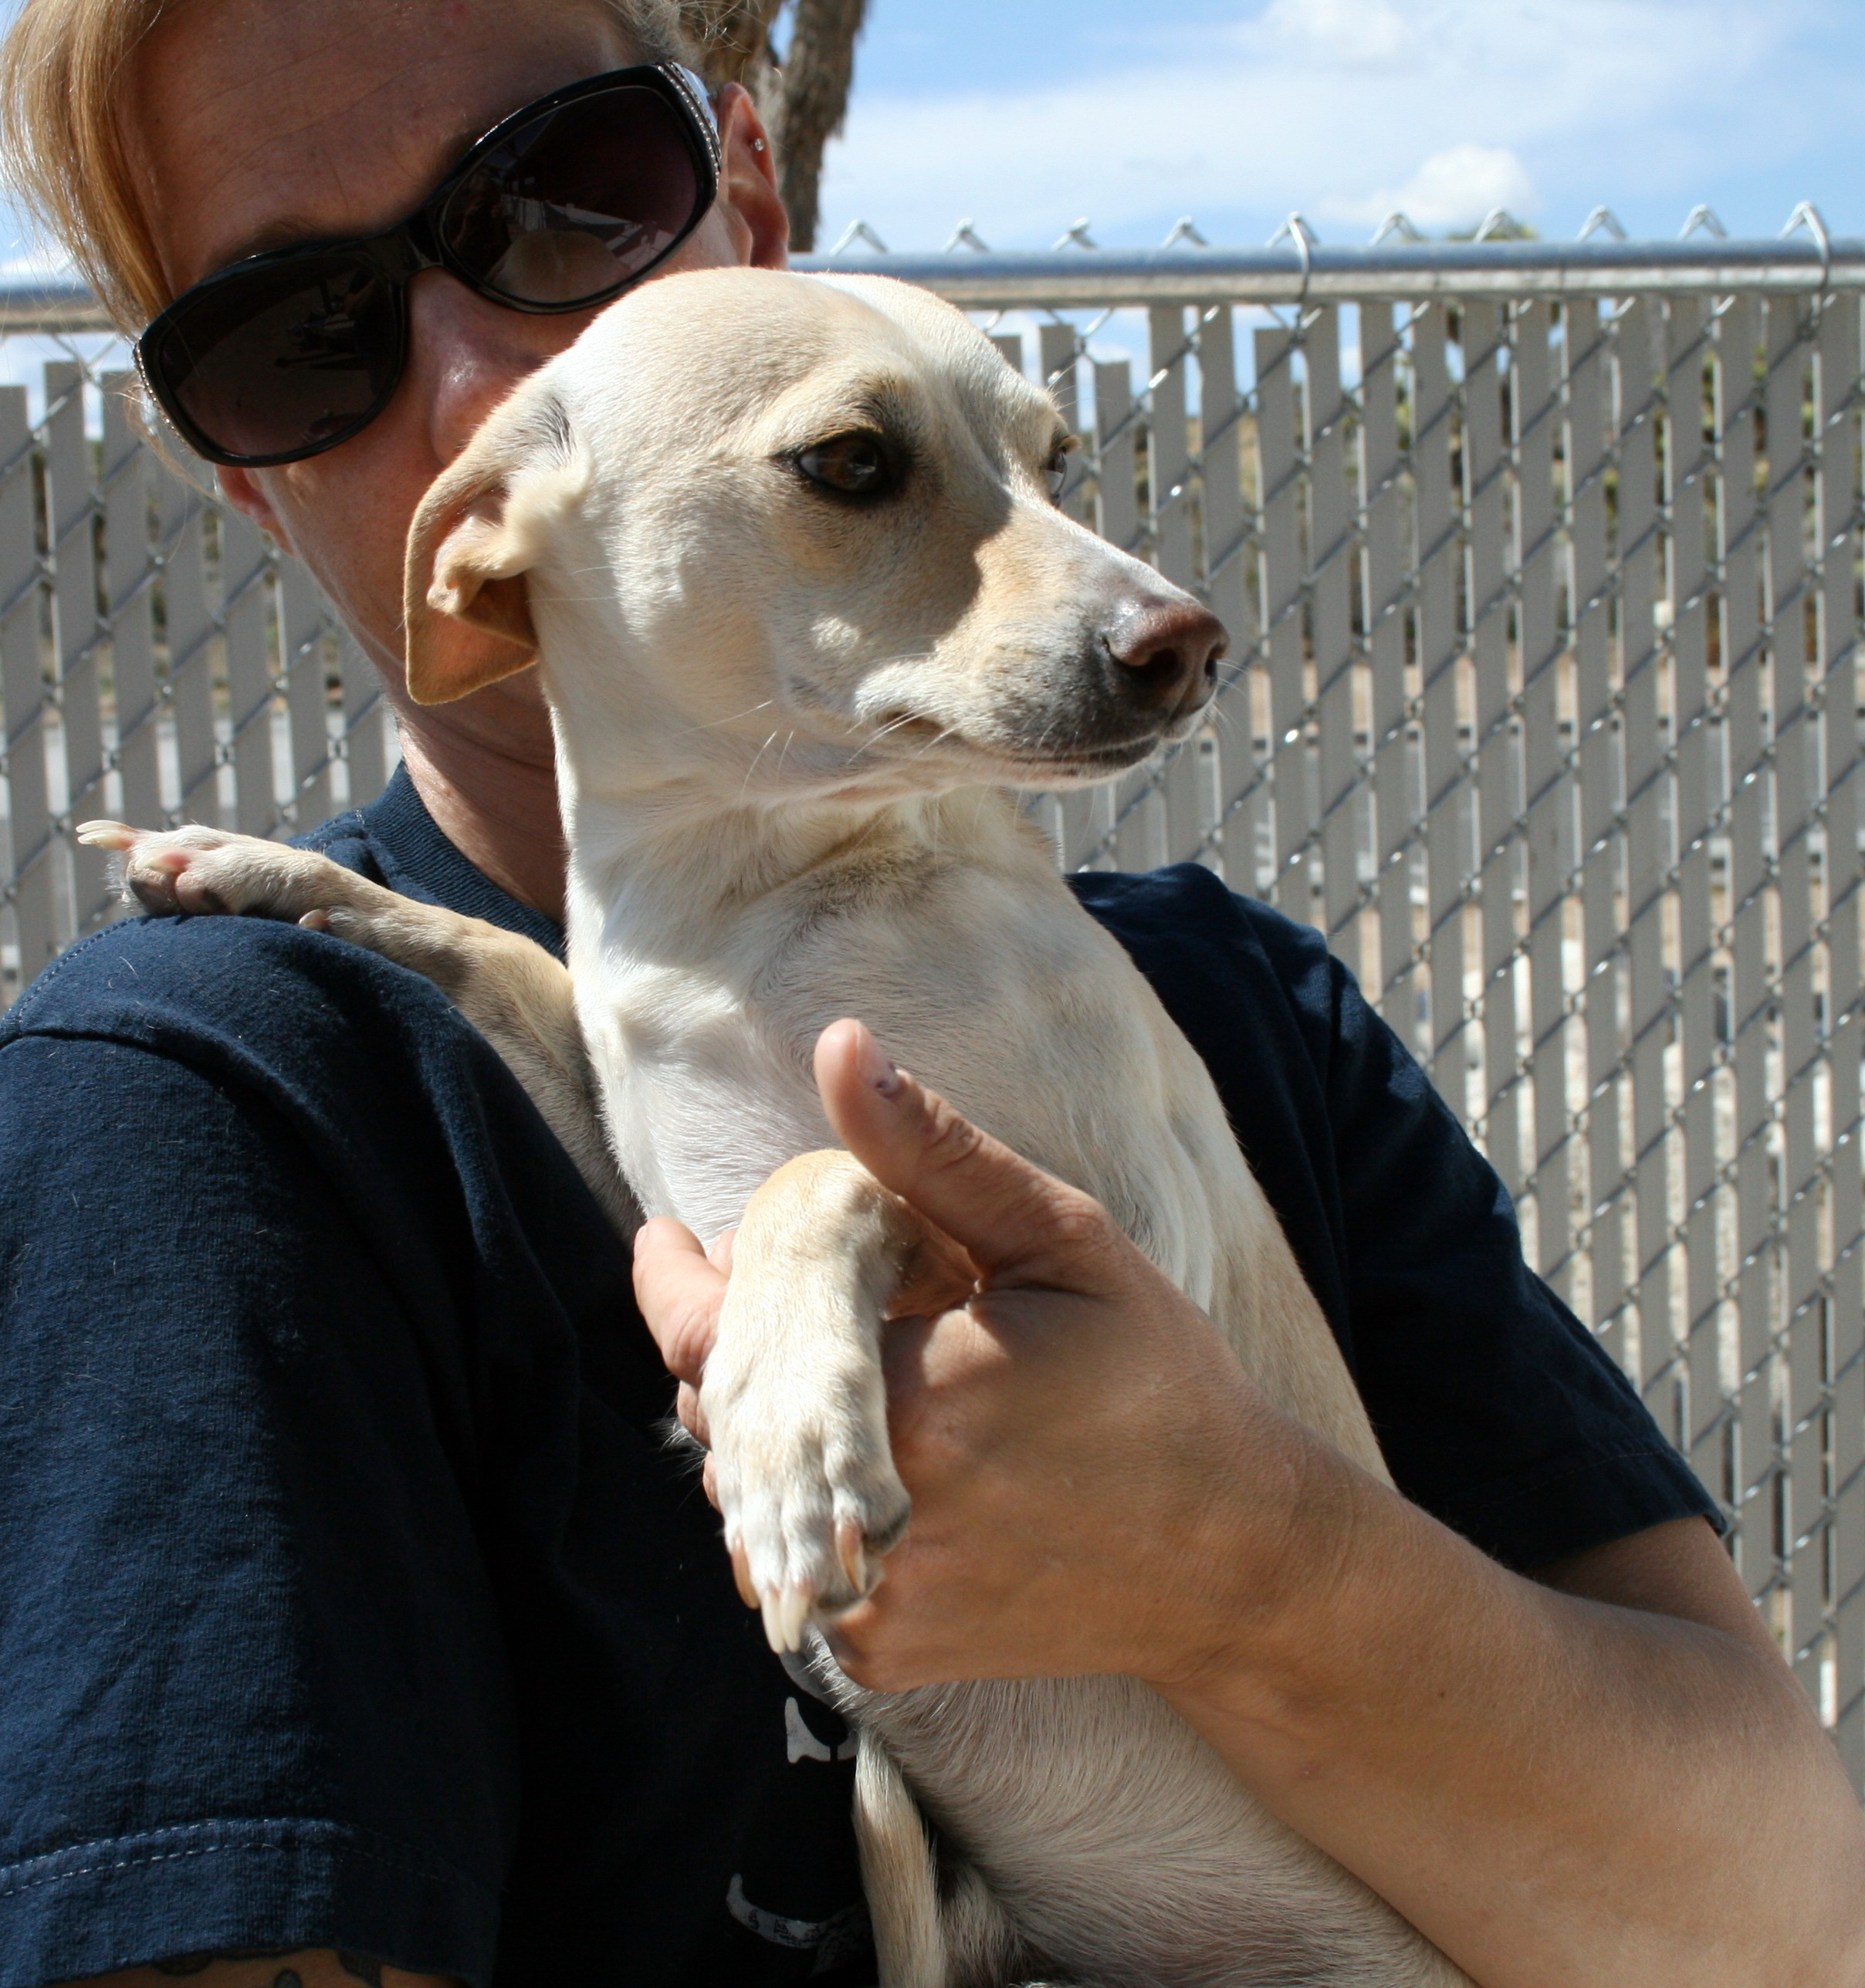 Husky puppies for sale yucca valley - Yucca Valley Ca Dachshund Meet Dobby Comet Granger A Dog For Adoption